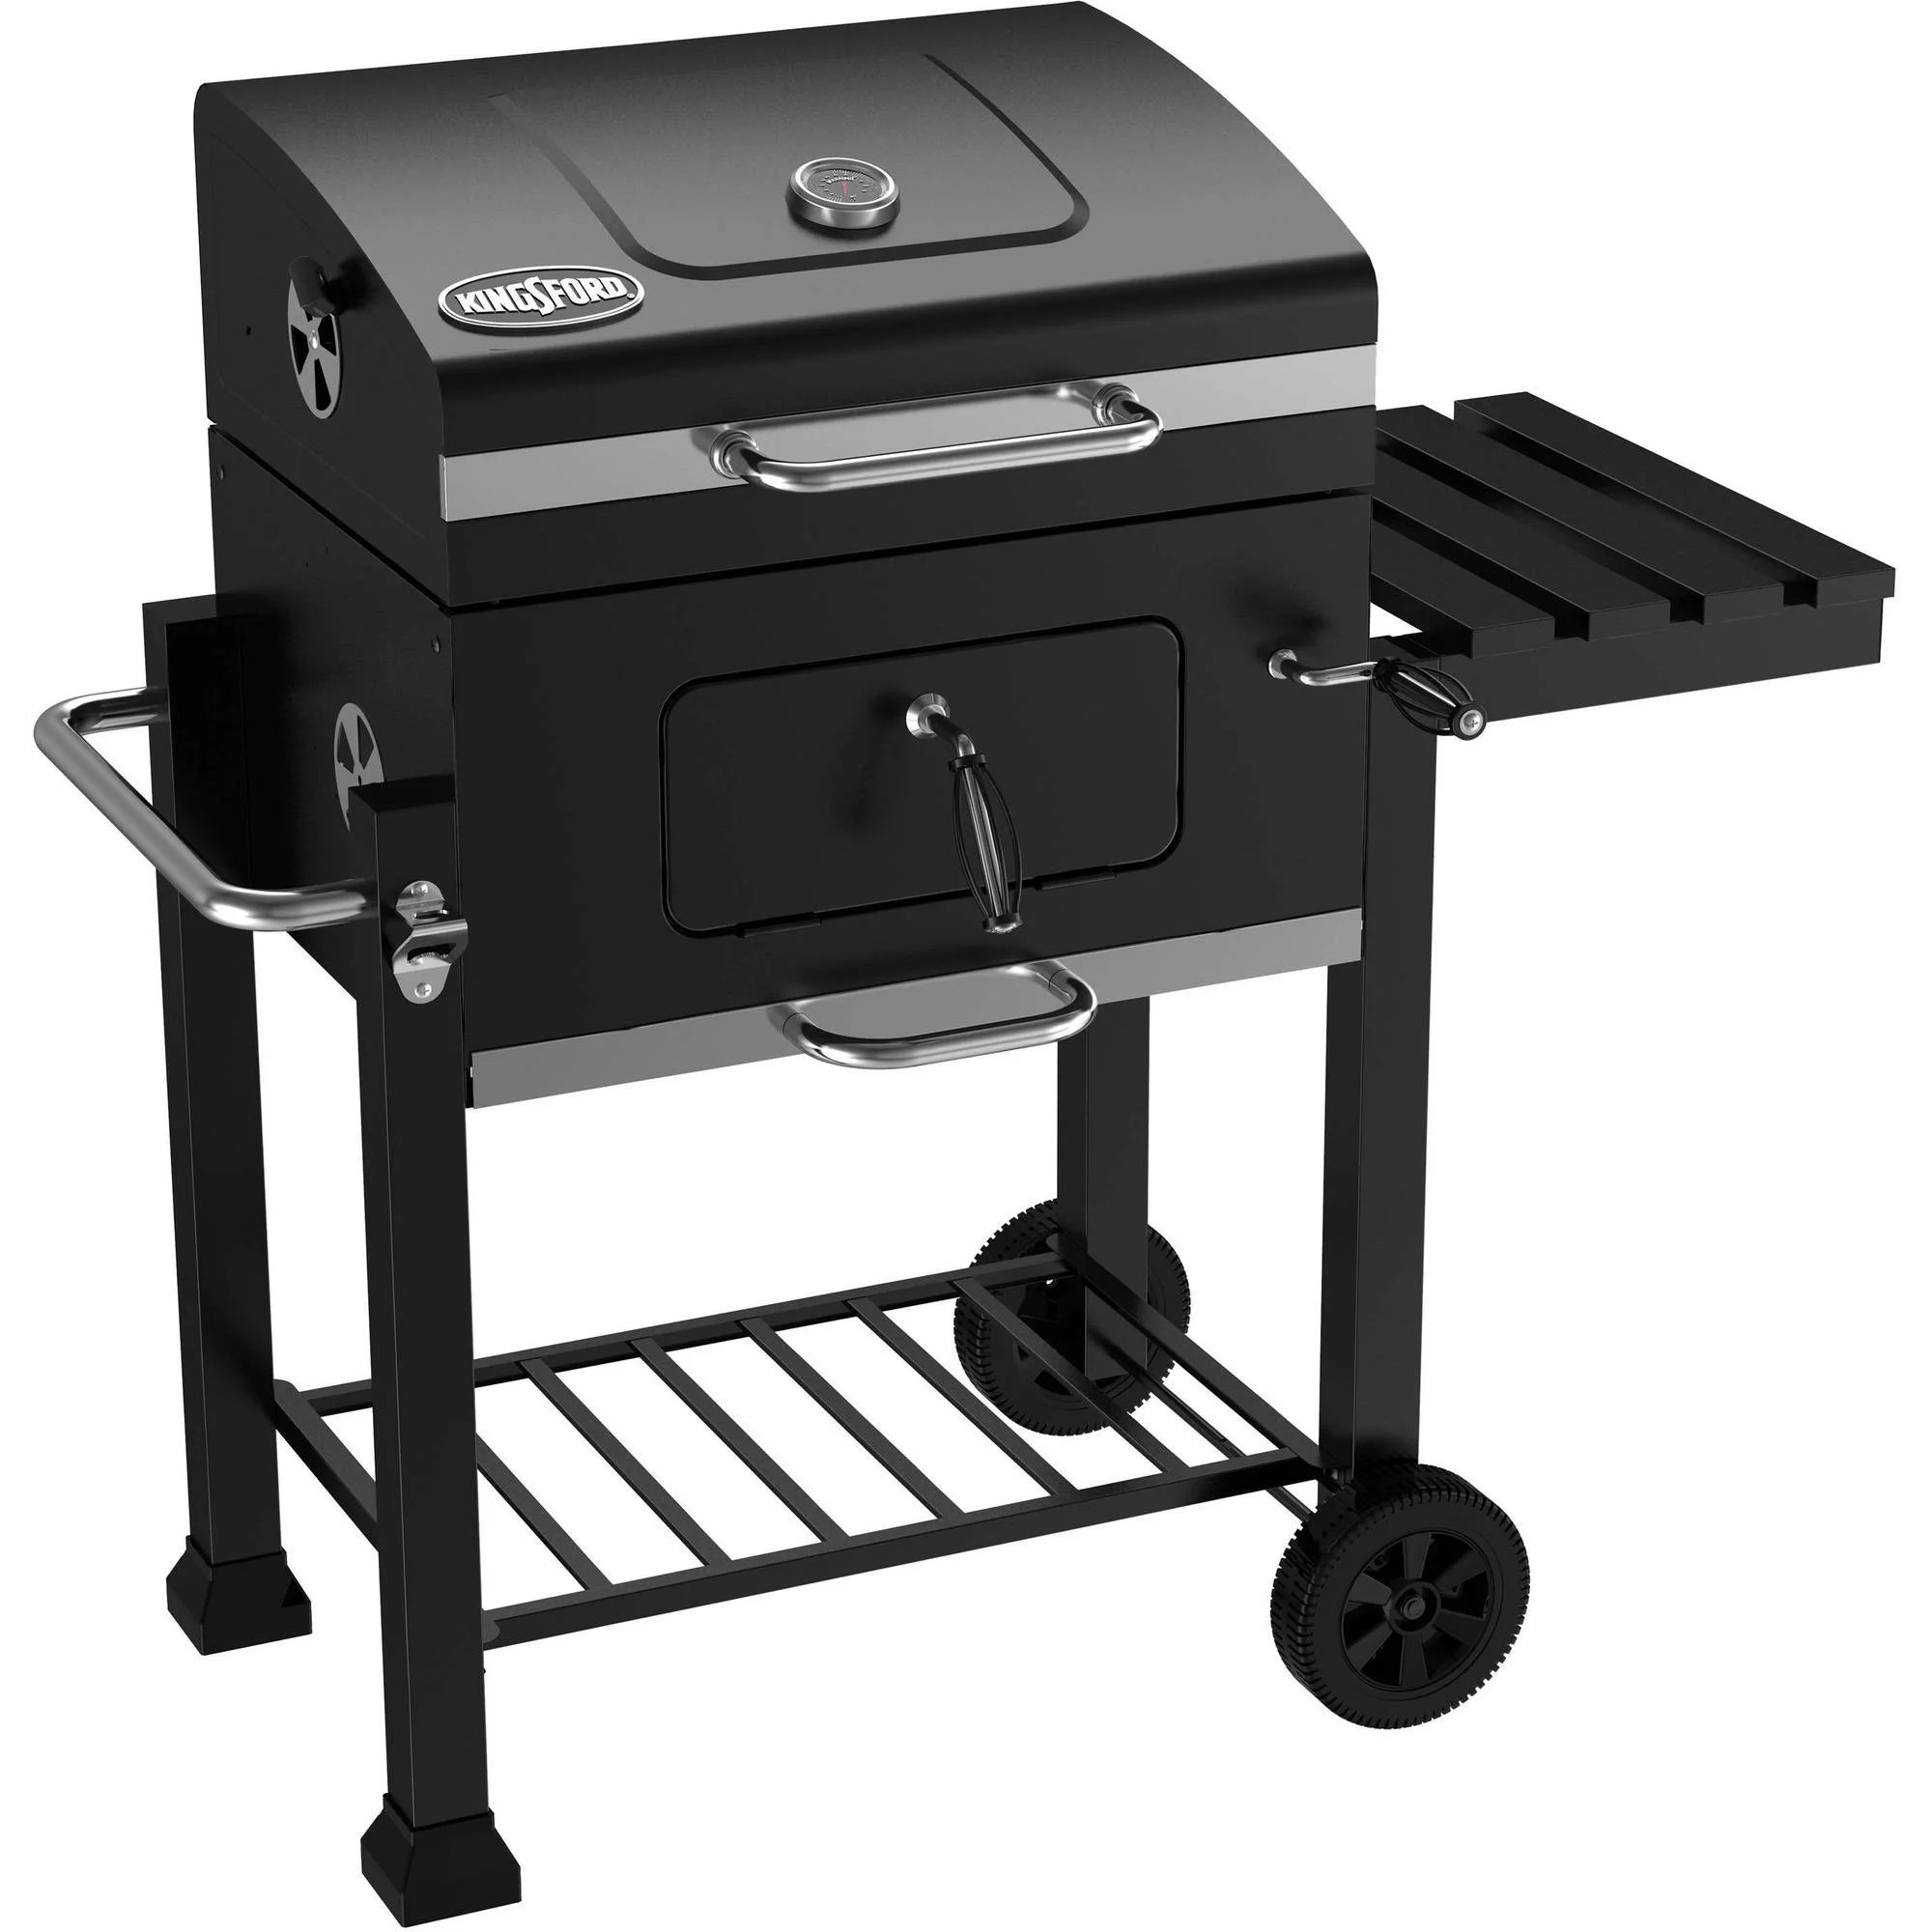 Charcoal For Bbq 24 Quot Charcoal Grill Kingsford Bbq Backyard Side Table